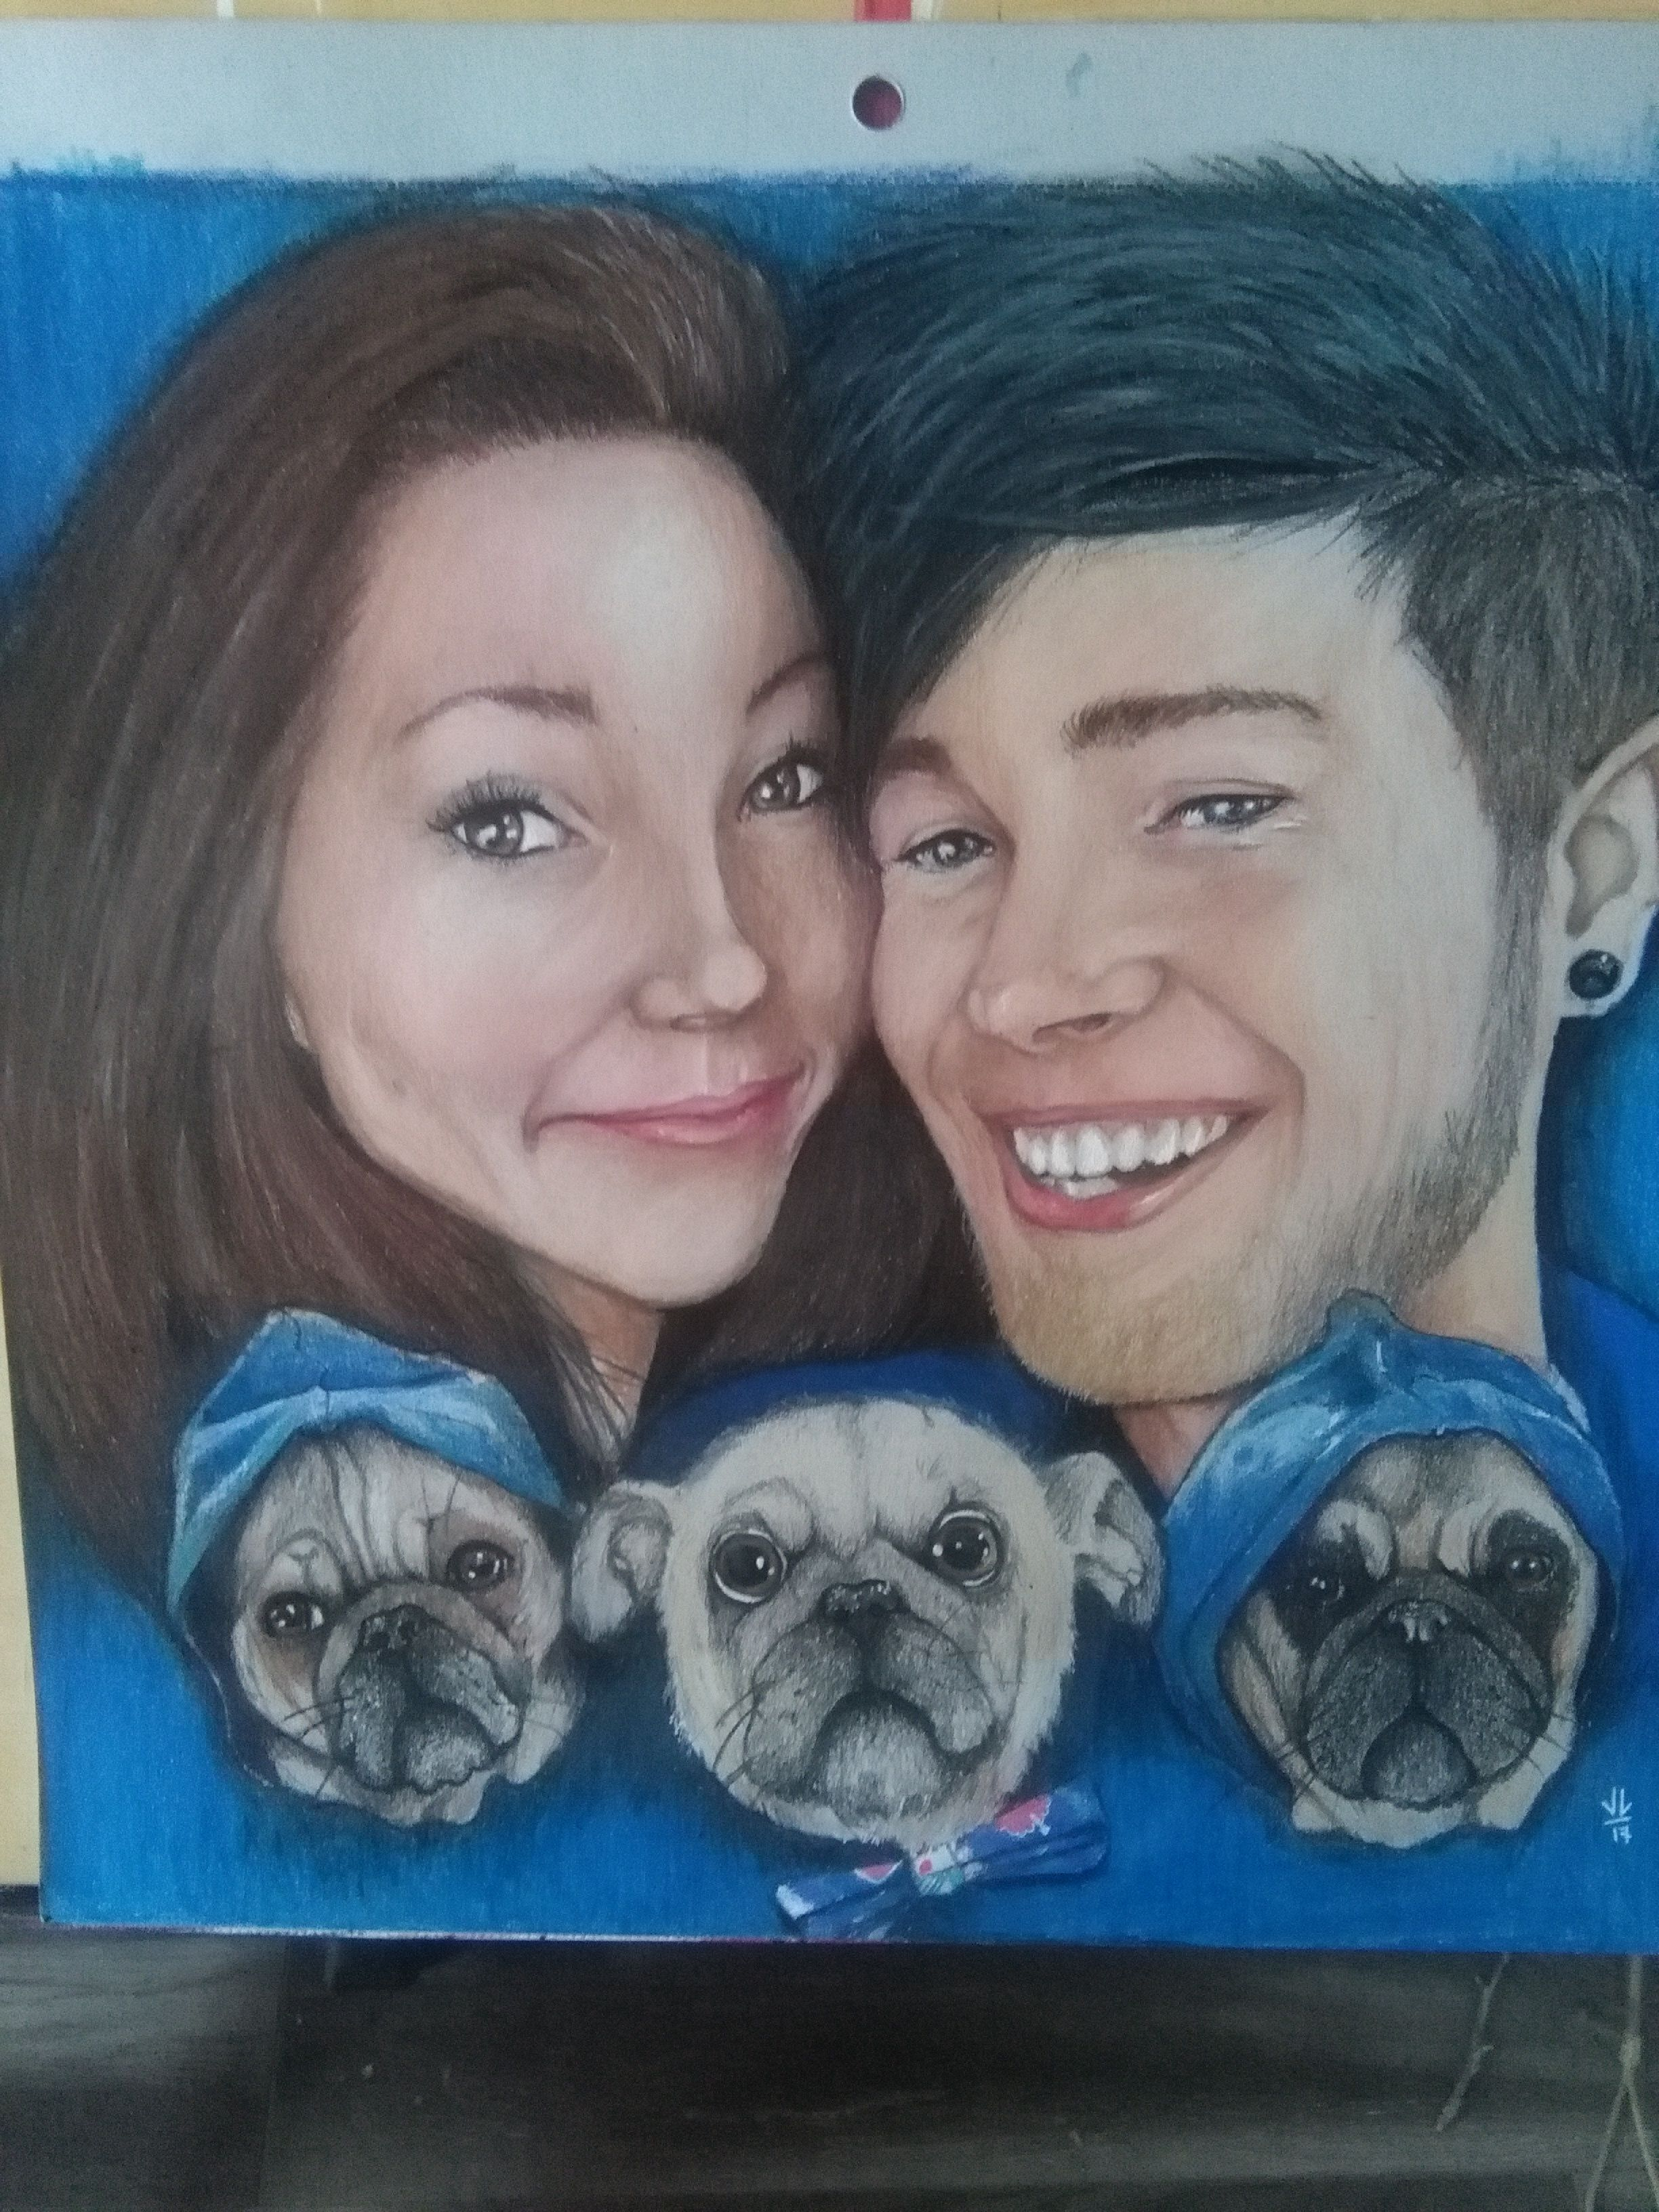 Youtuber Dantdm His Wife Jemma And Their Pugs Including Peggy